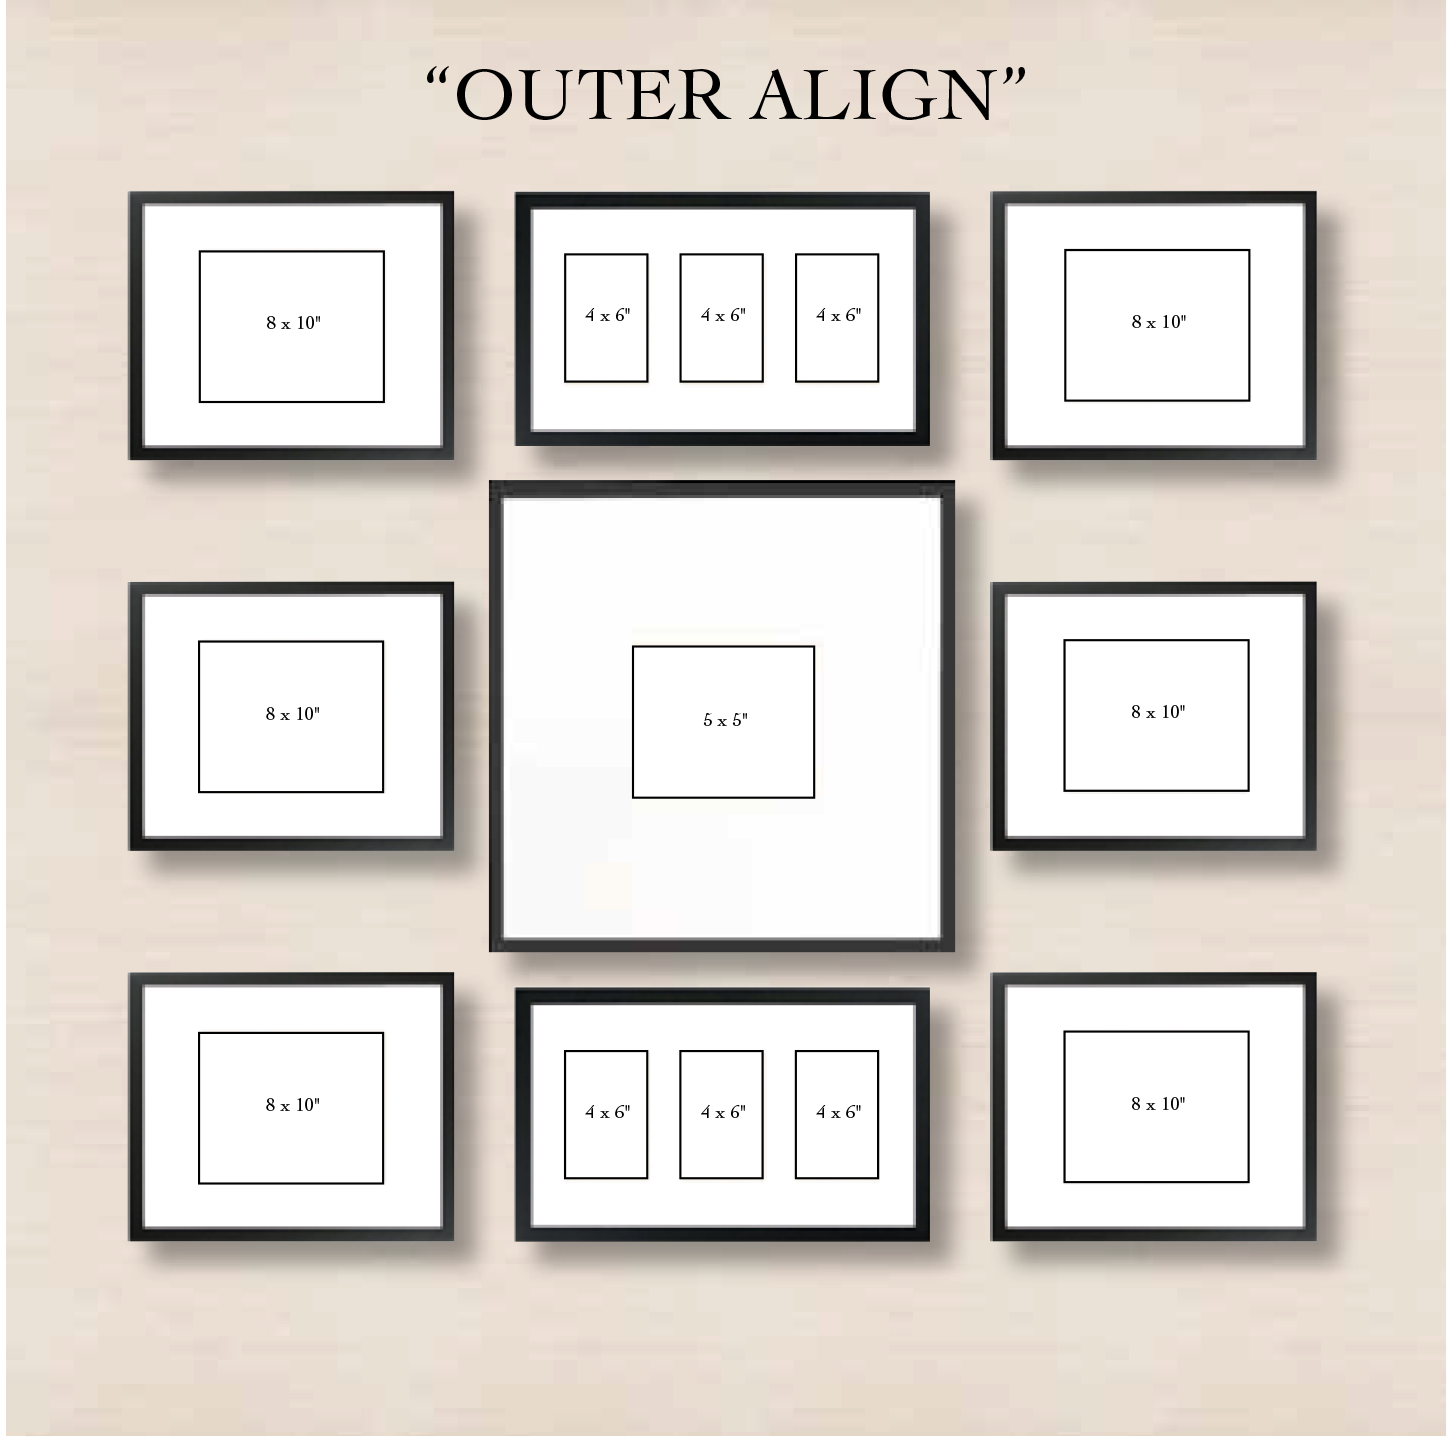 6 Ways To Set Up A Gallery Wall Gallery Wall Layout Gallery Wall Photo Wall Gallery